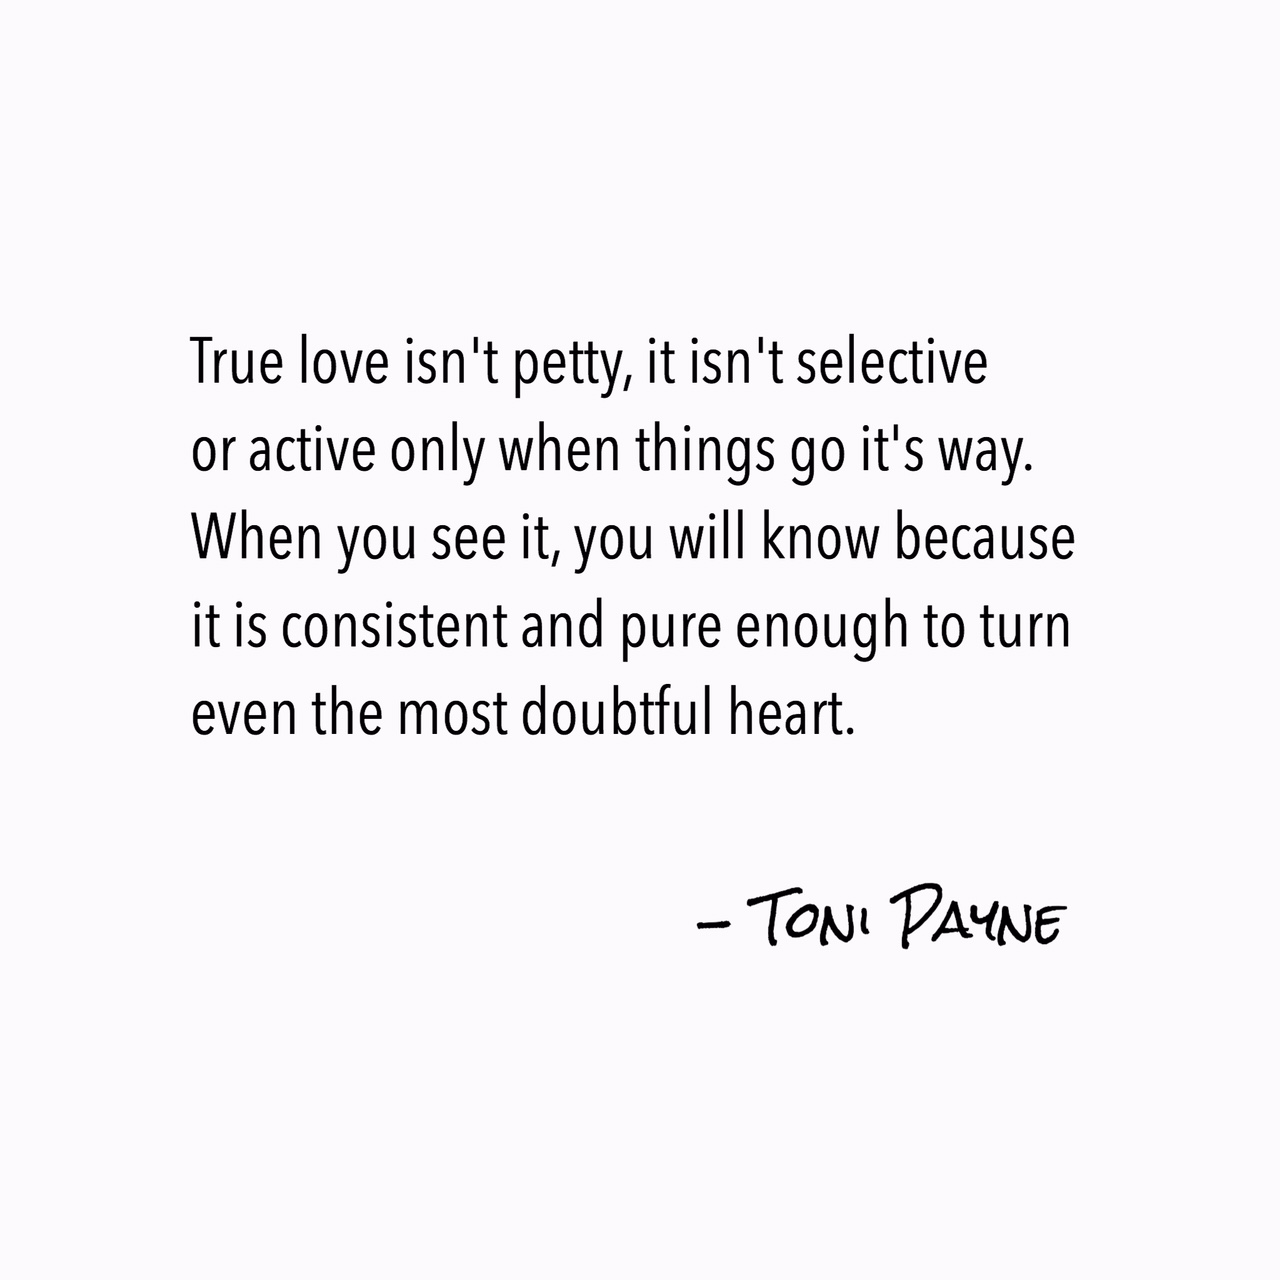 The Giver Book Quotes Quote About True Love  Toni Payne  Official Website